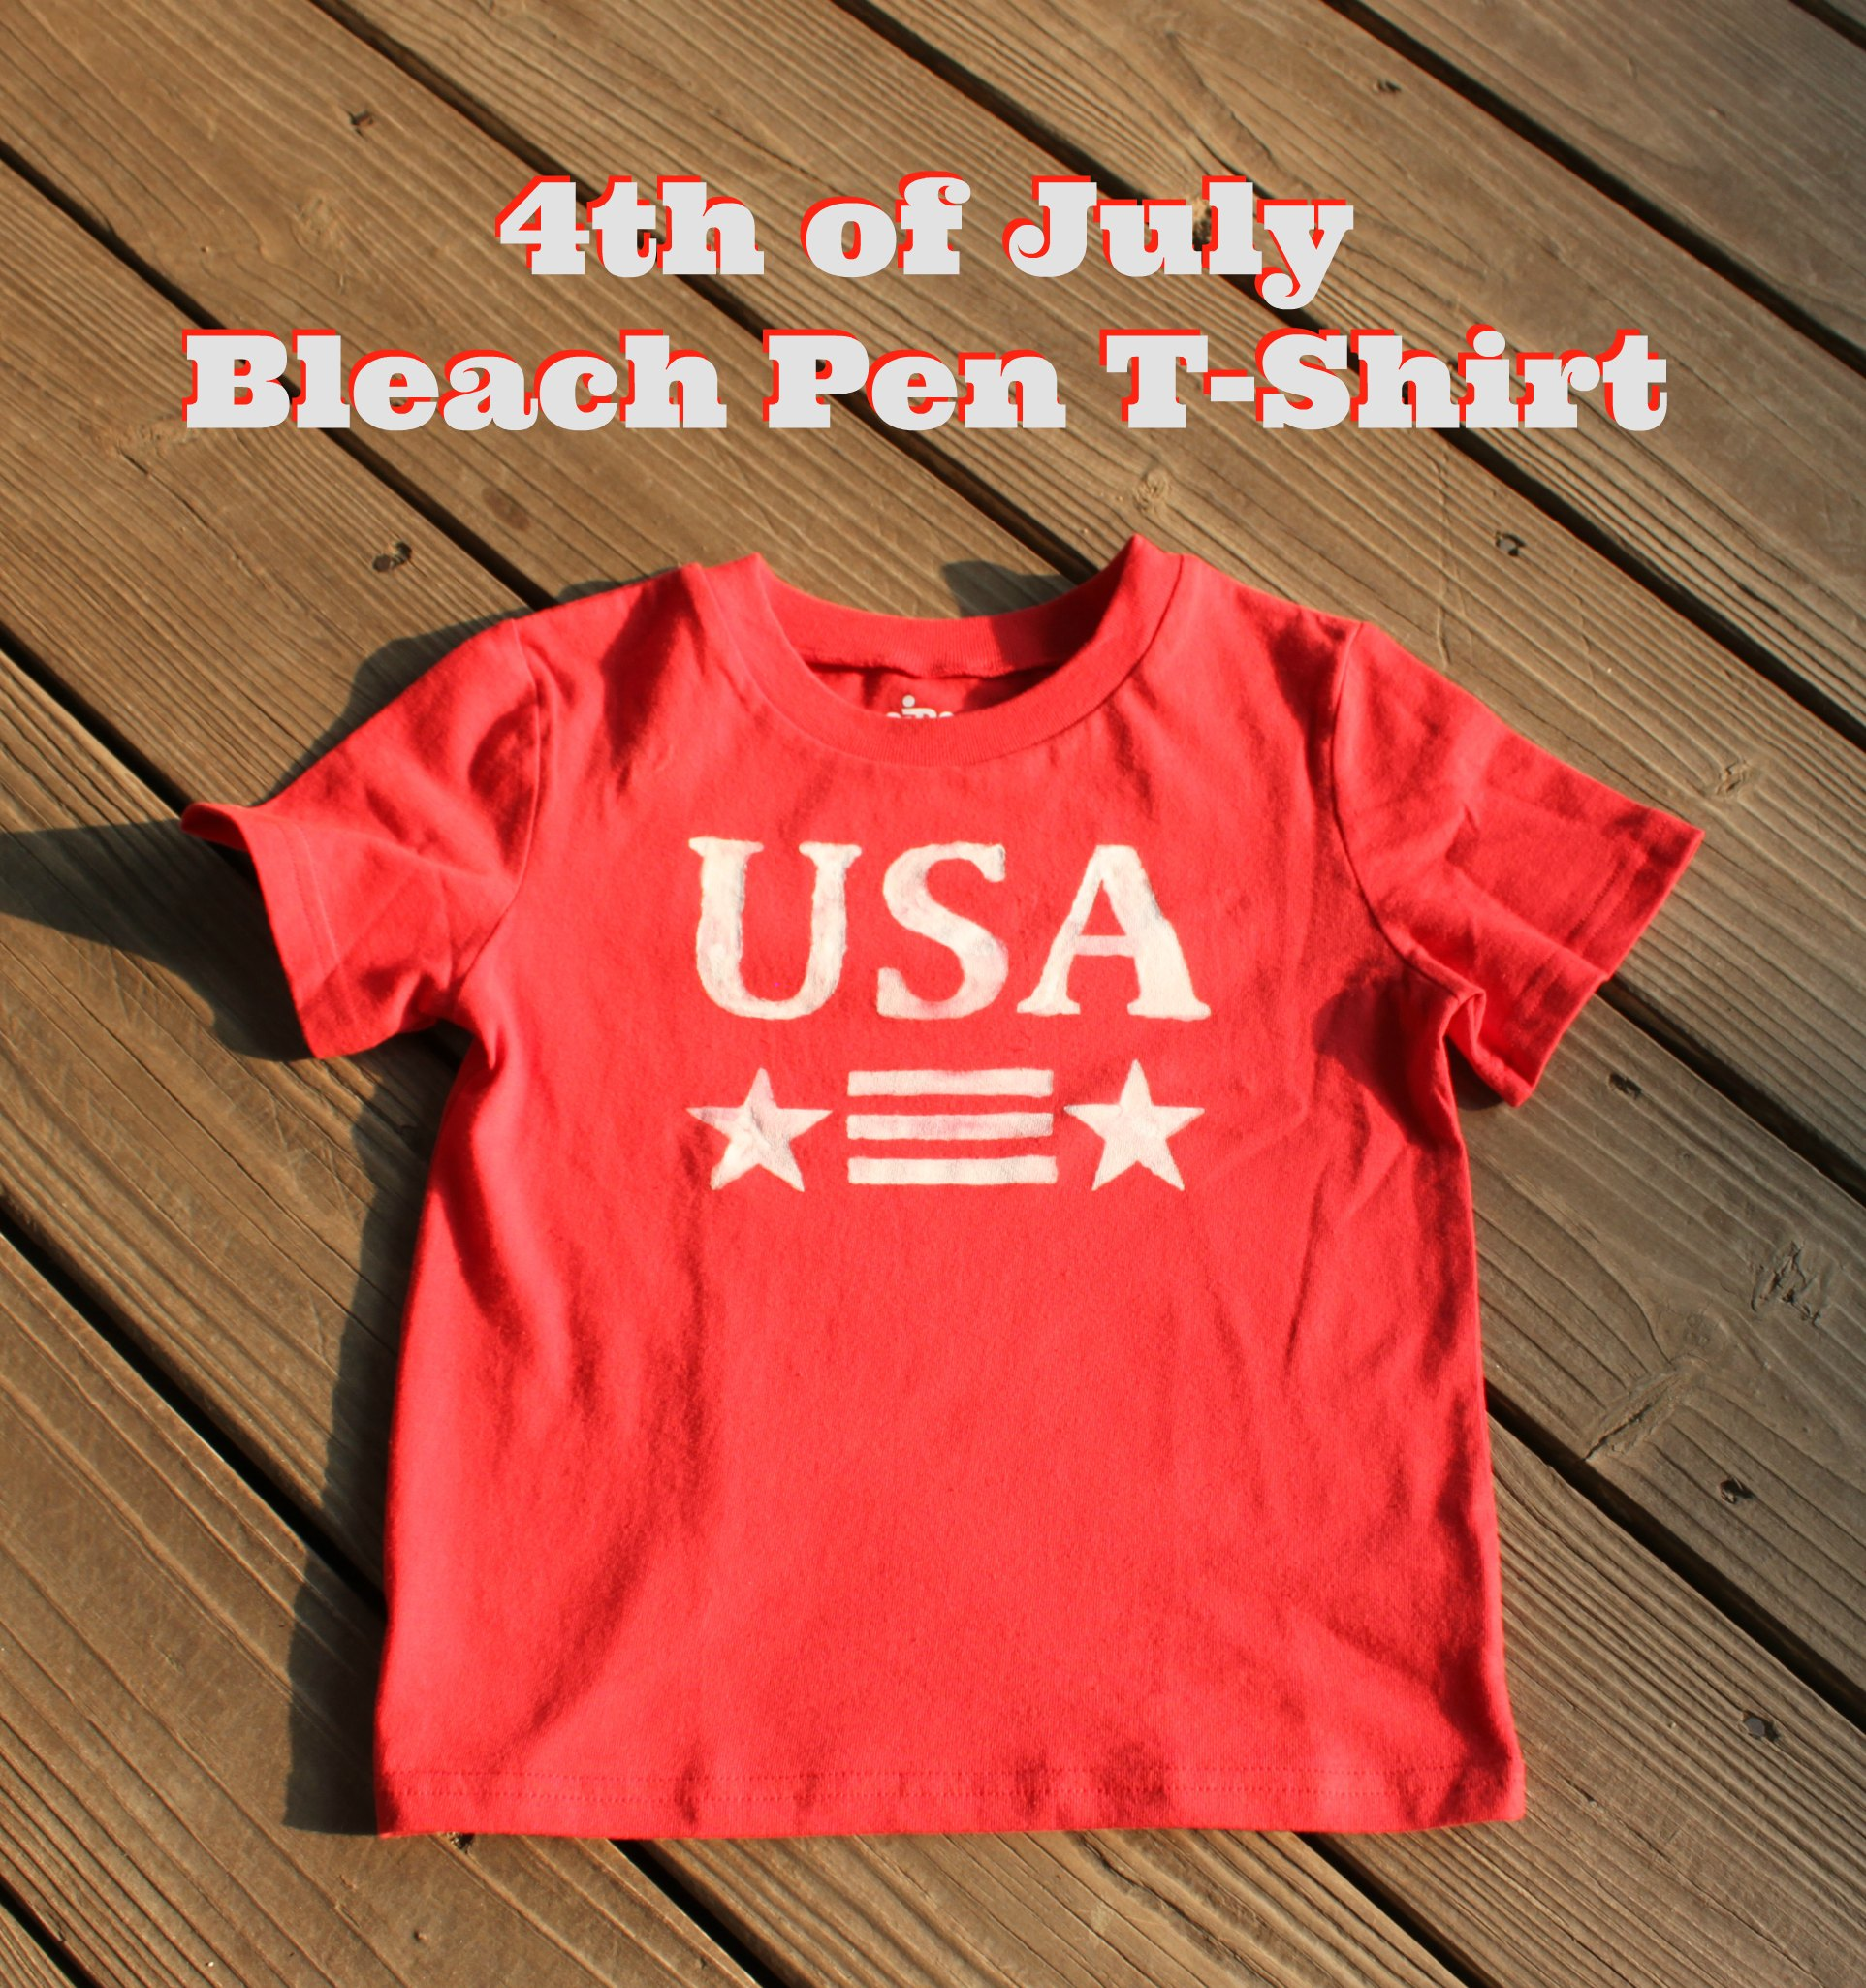 Bleach Pen T-Shirts